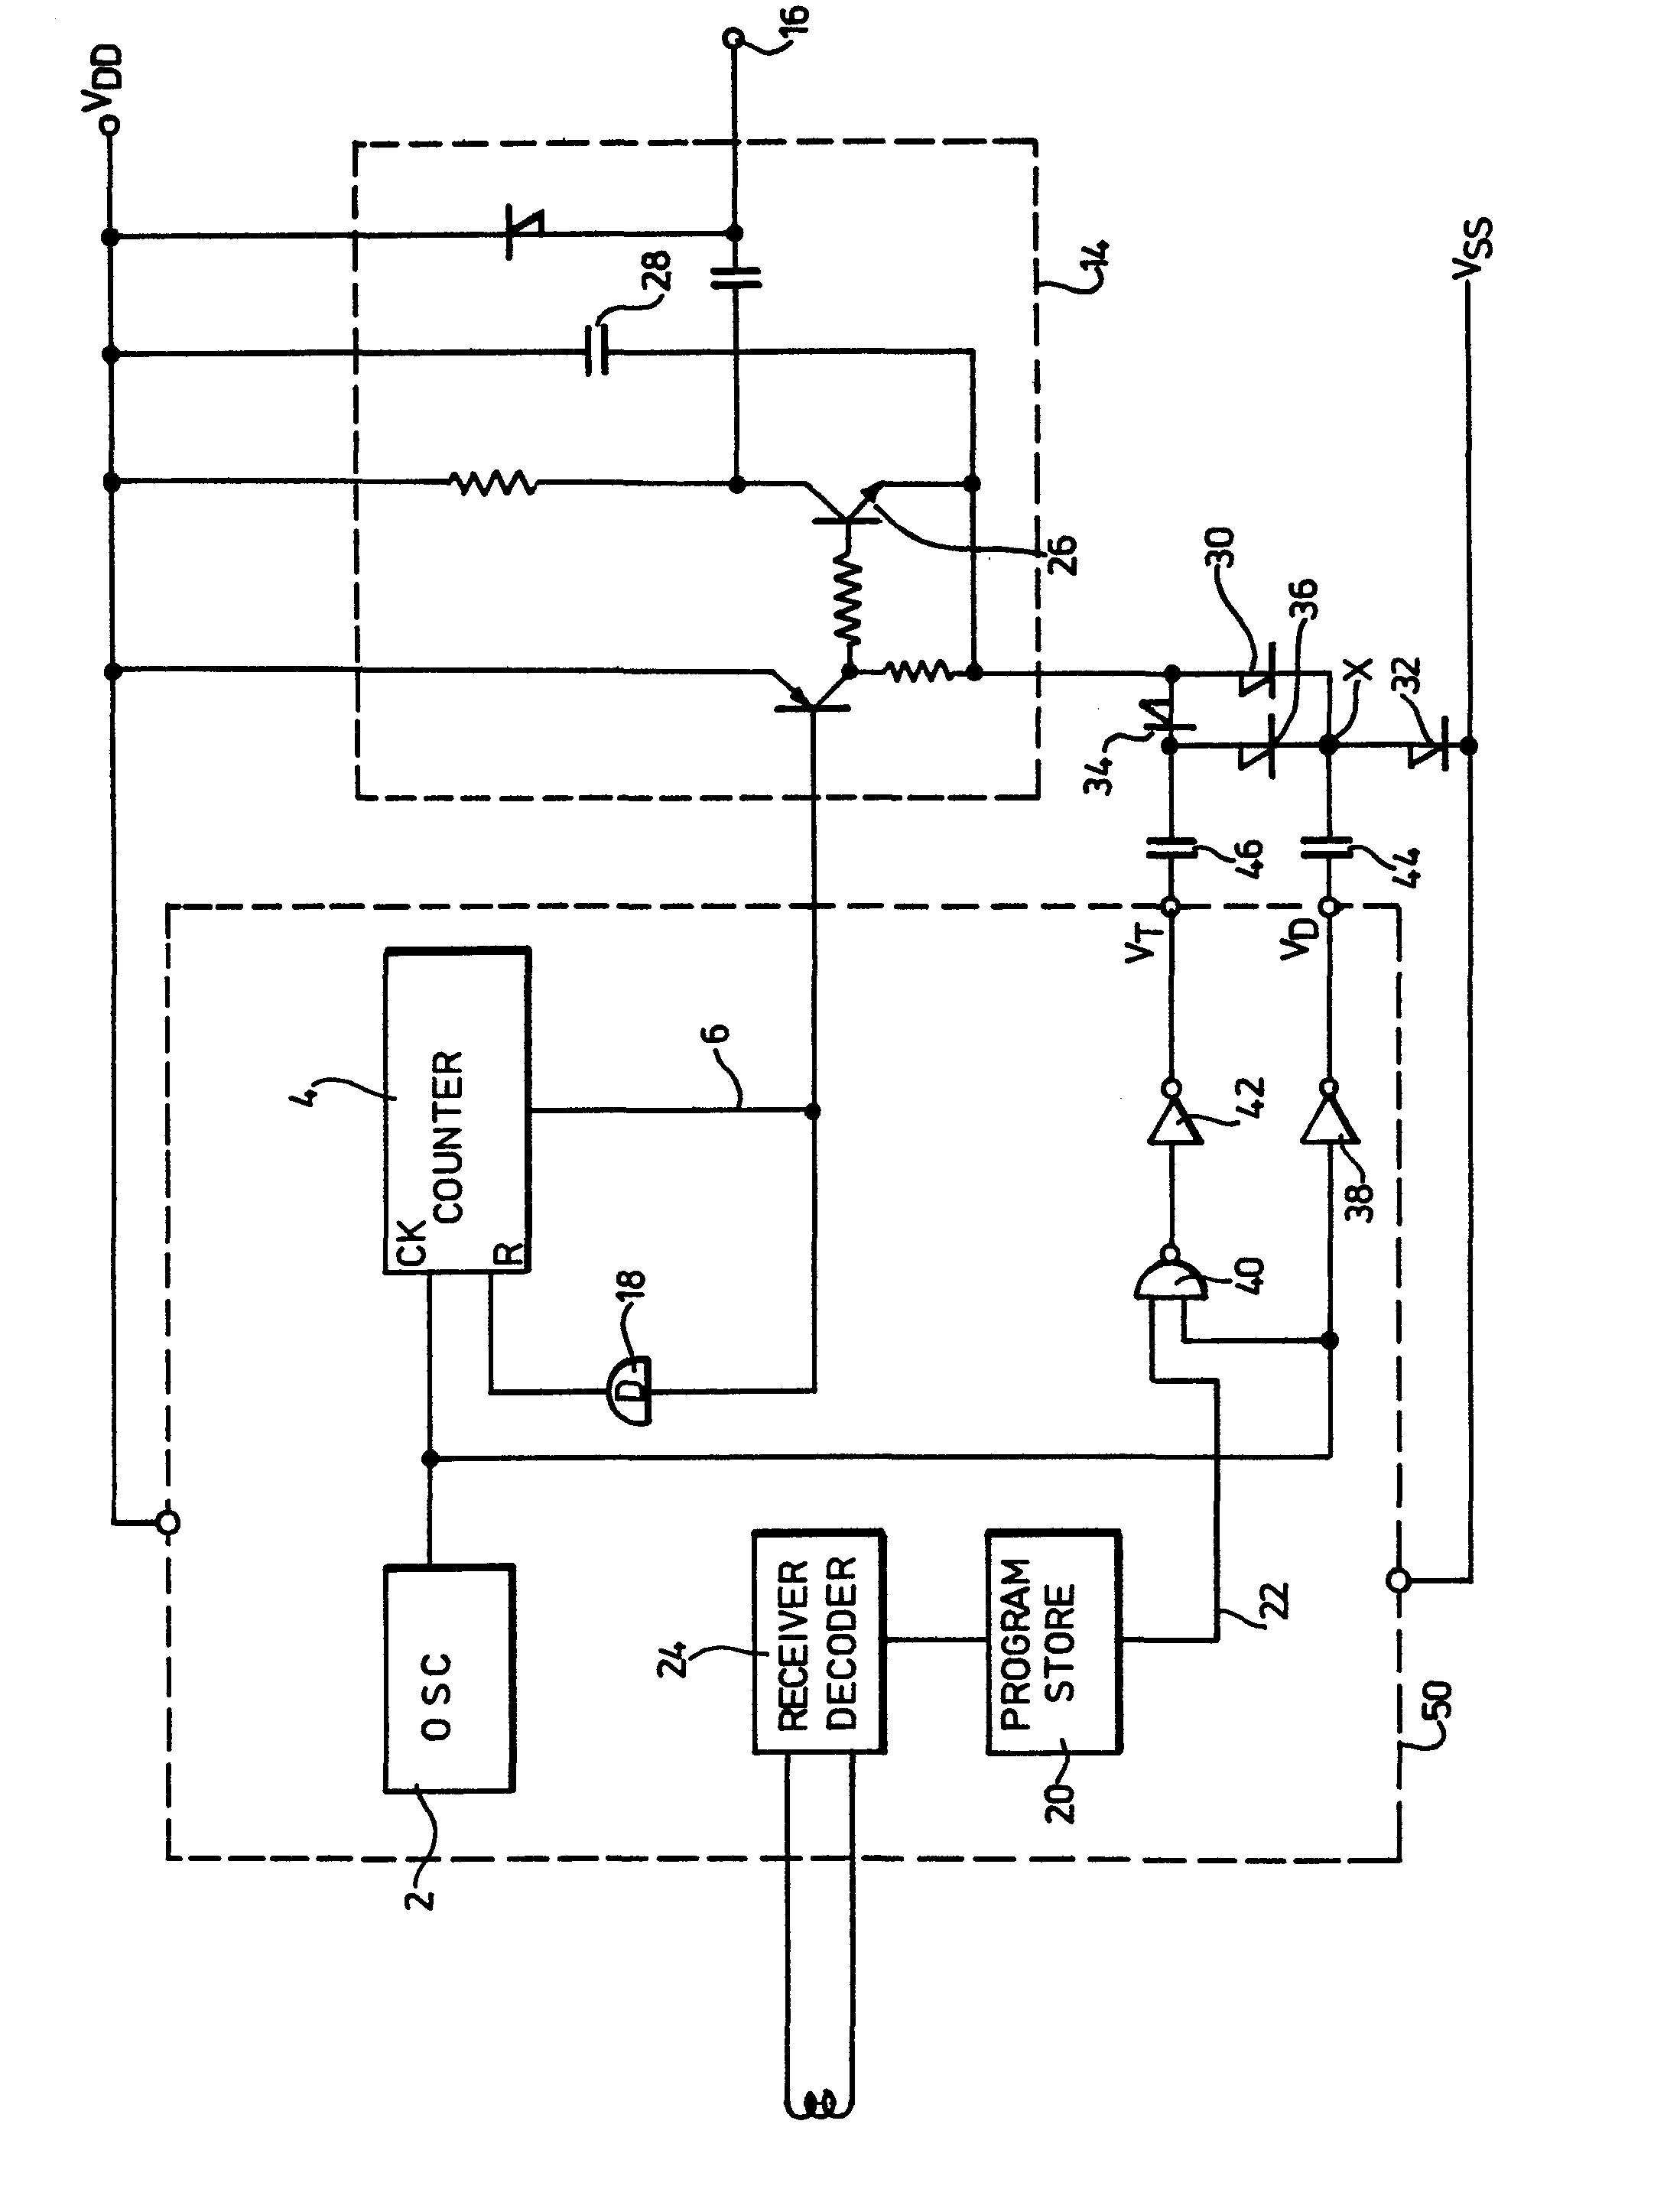 Patente Ep0000983a1 Programmably Variable Voltage Multiplier For With Diodes And Capacitors Patent Drawing